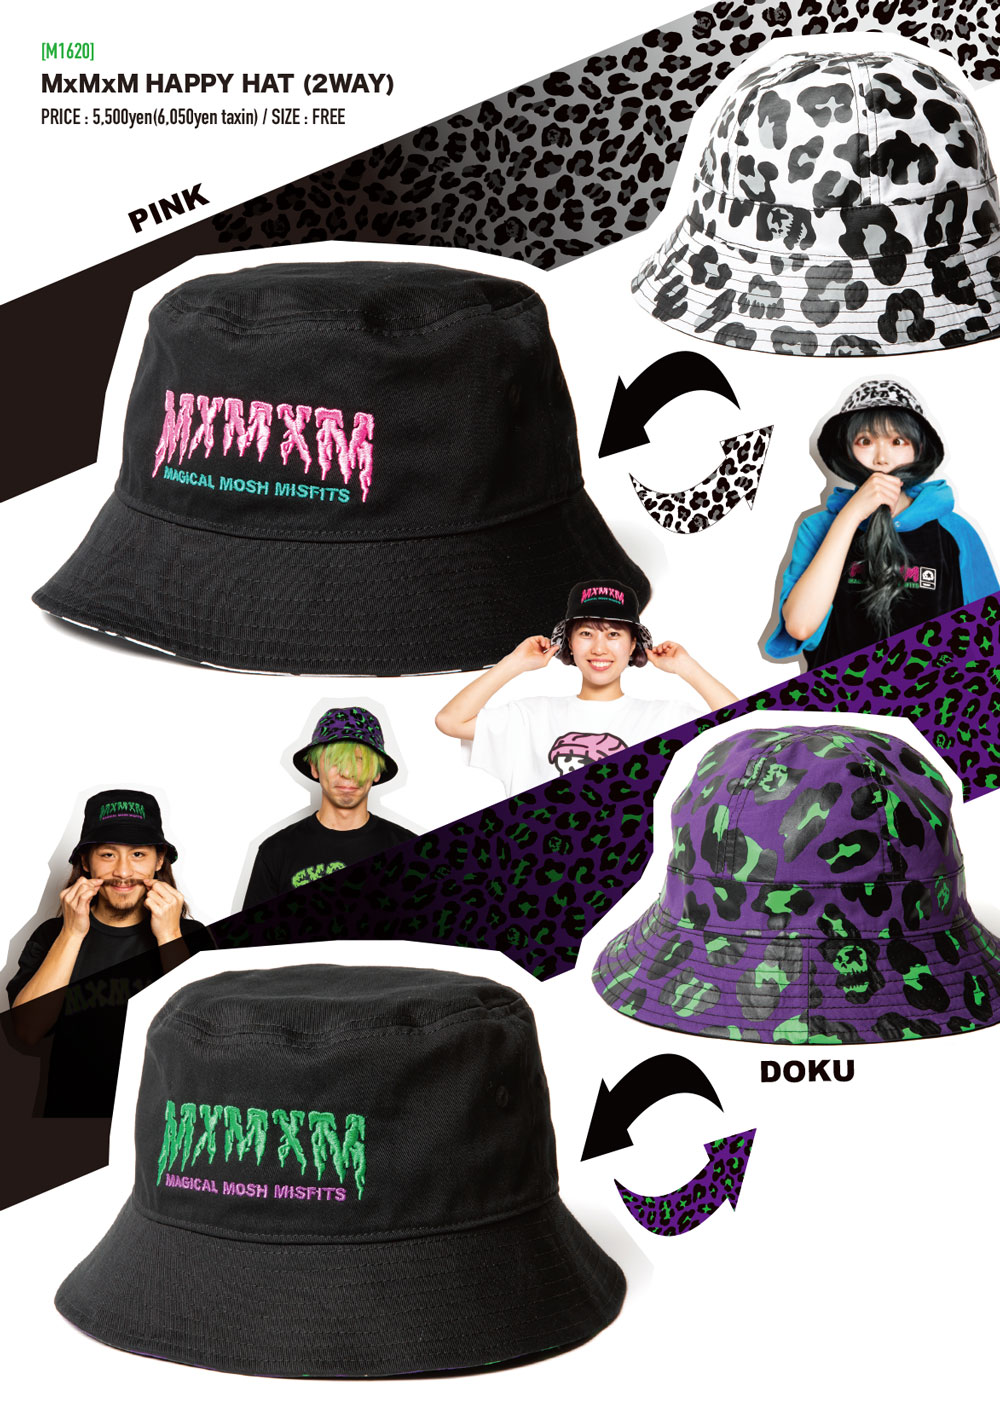 [SOLD OUT]MxMxM HAPPY HAT (2WAY)